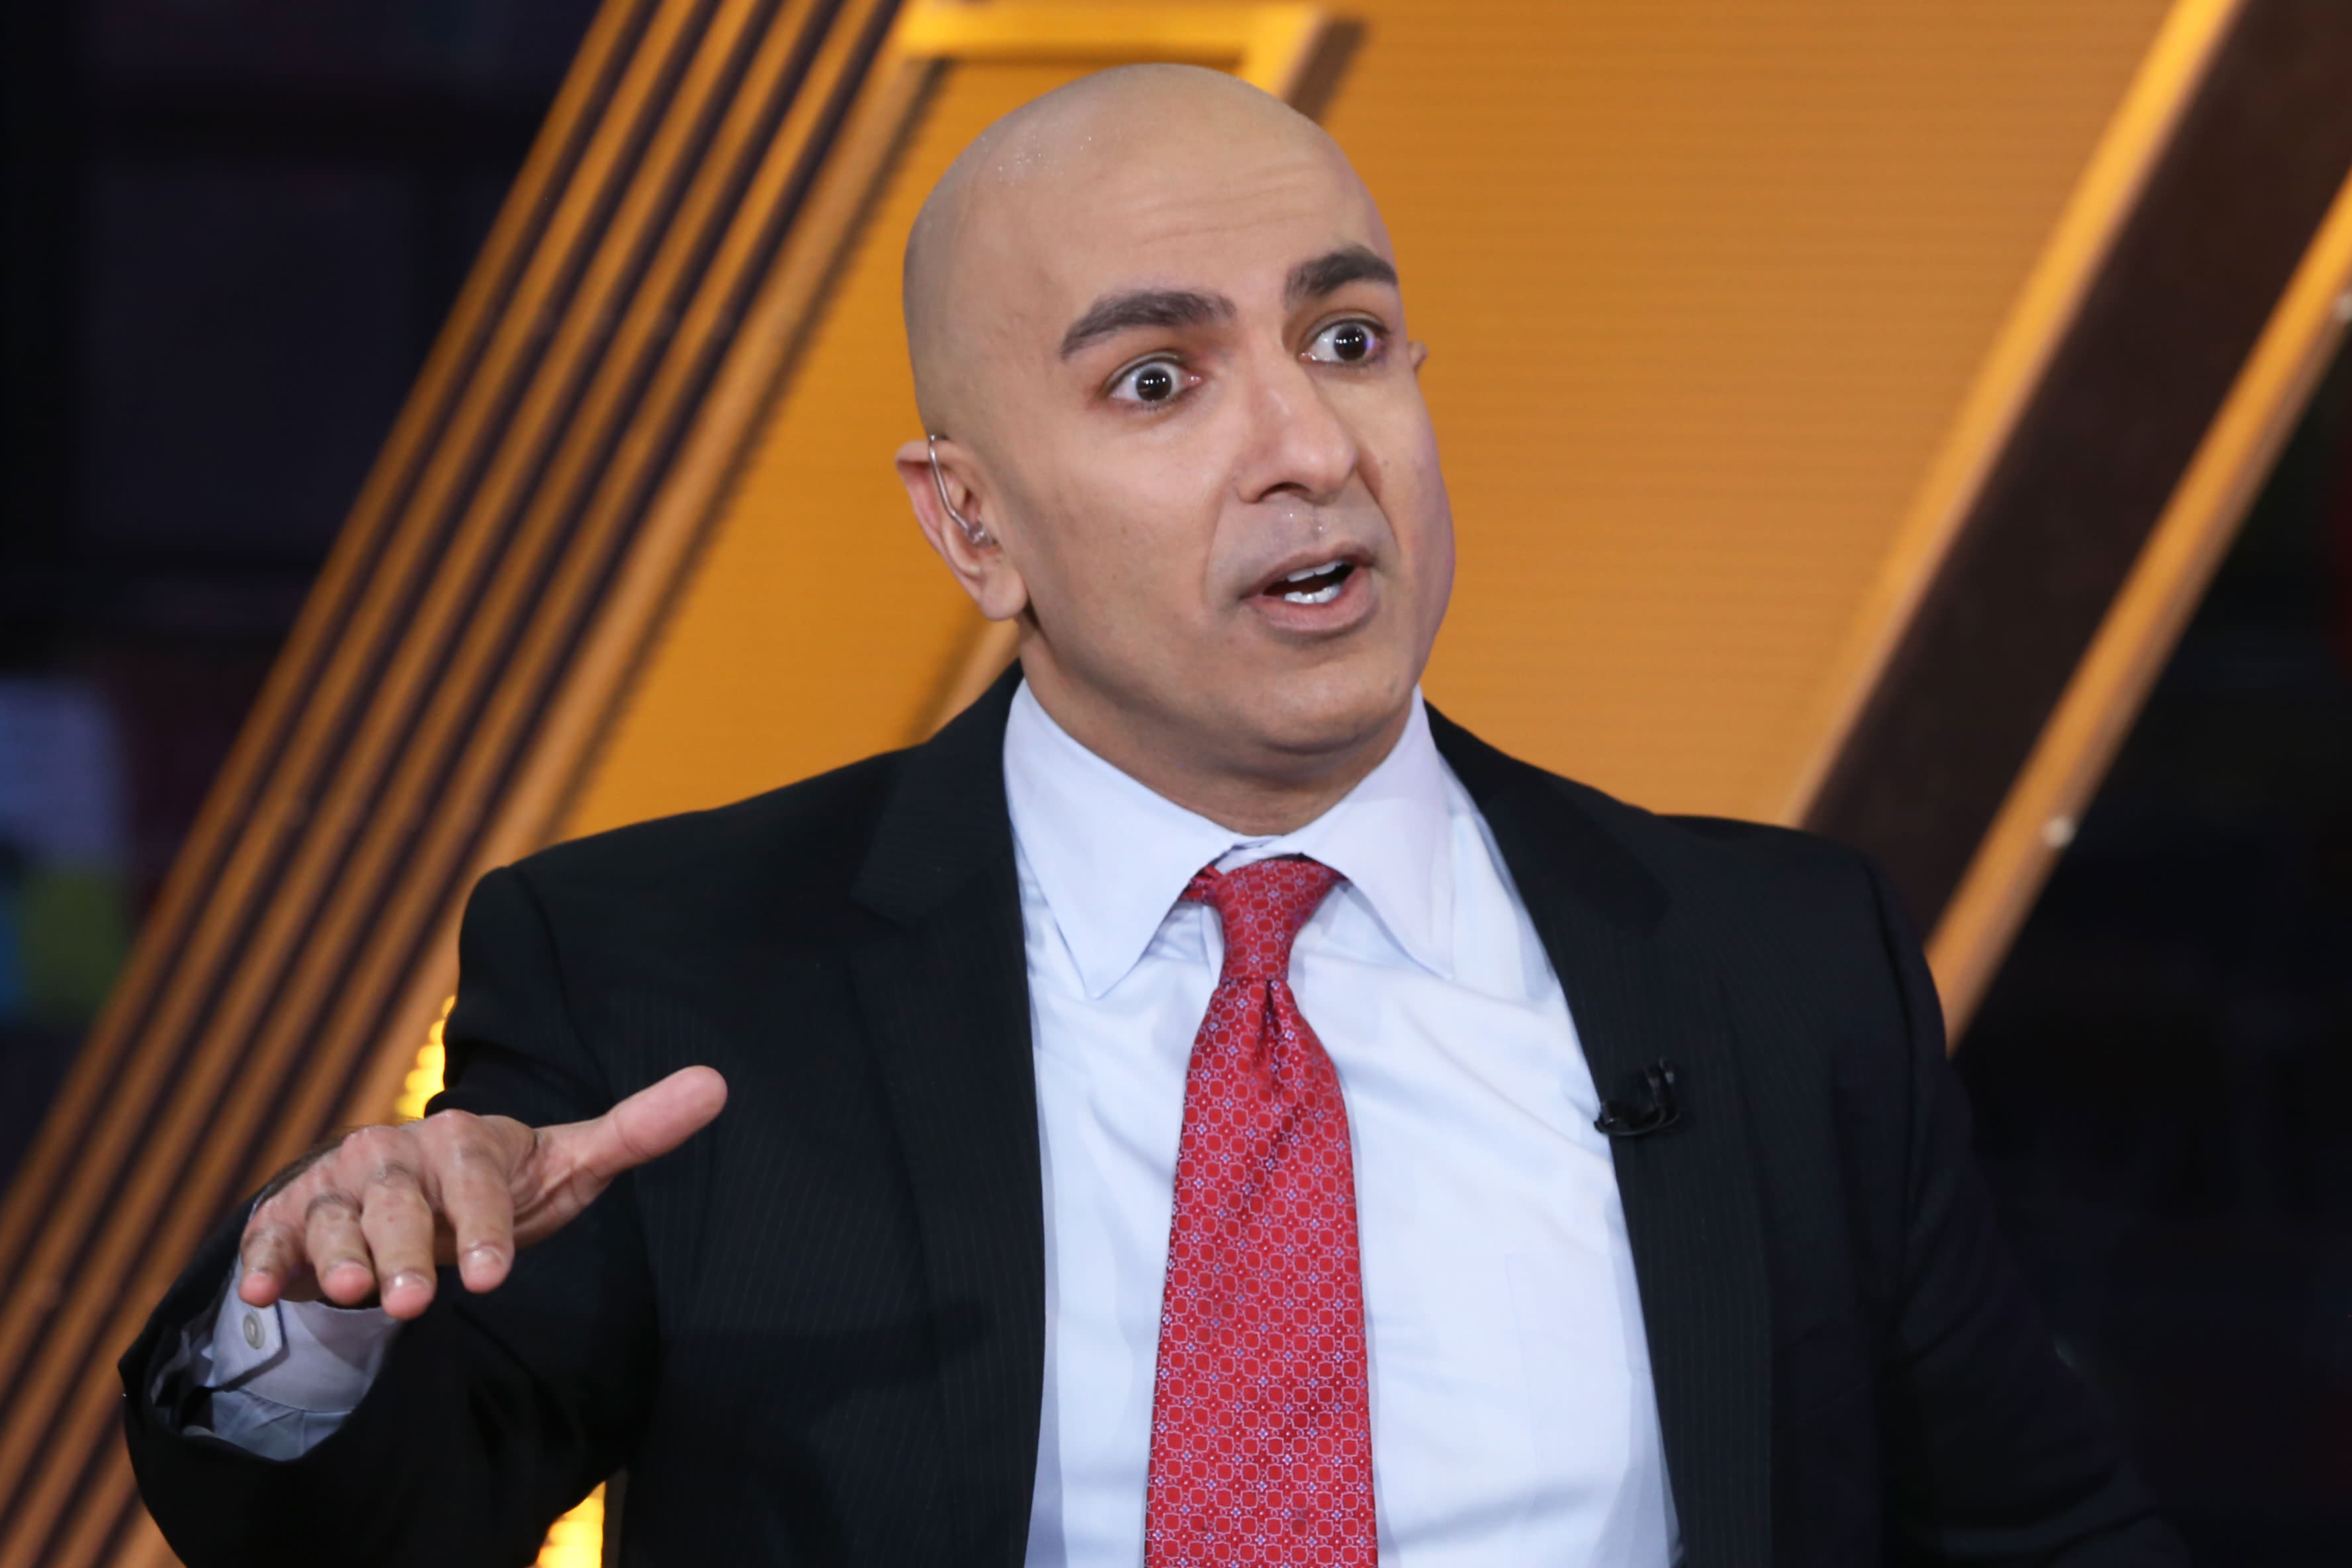 Fed's Kashkari calls for no more rate hikes until inflation hits 2%